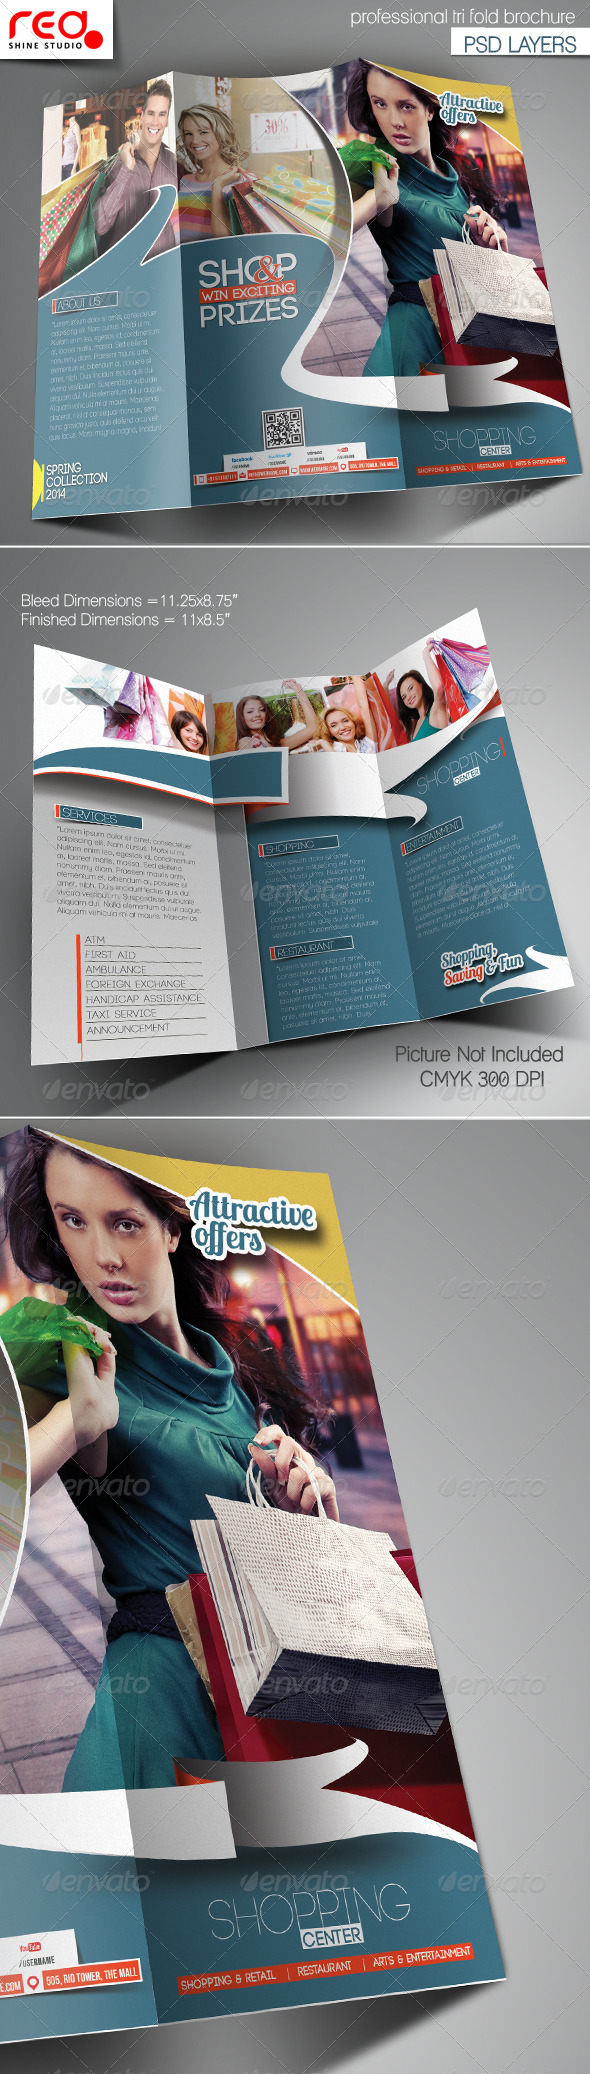 GraphicRiver Shopping Center Trifold Brochure Template 7139709